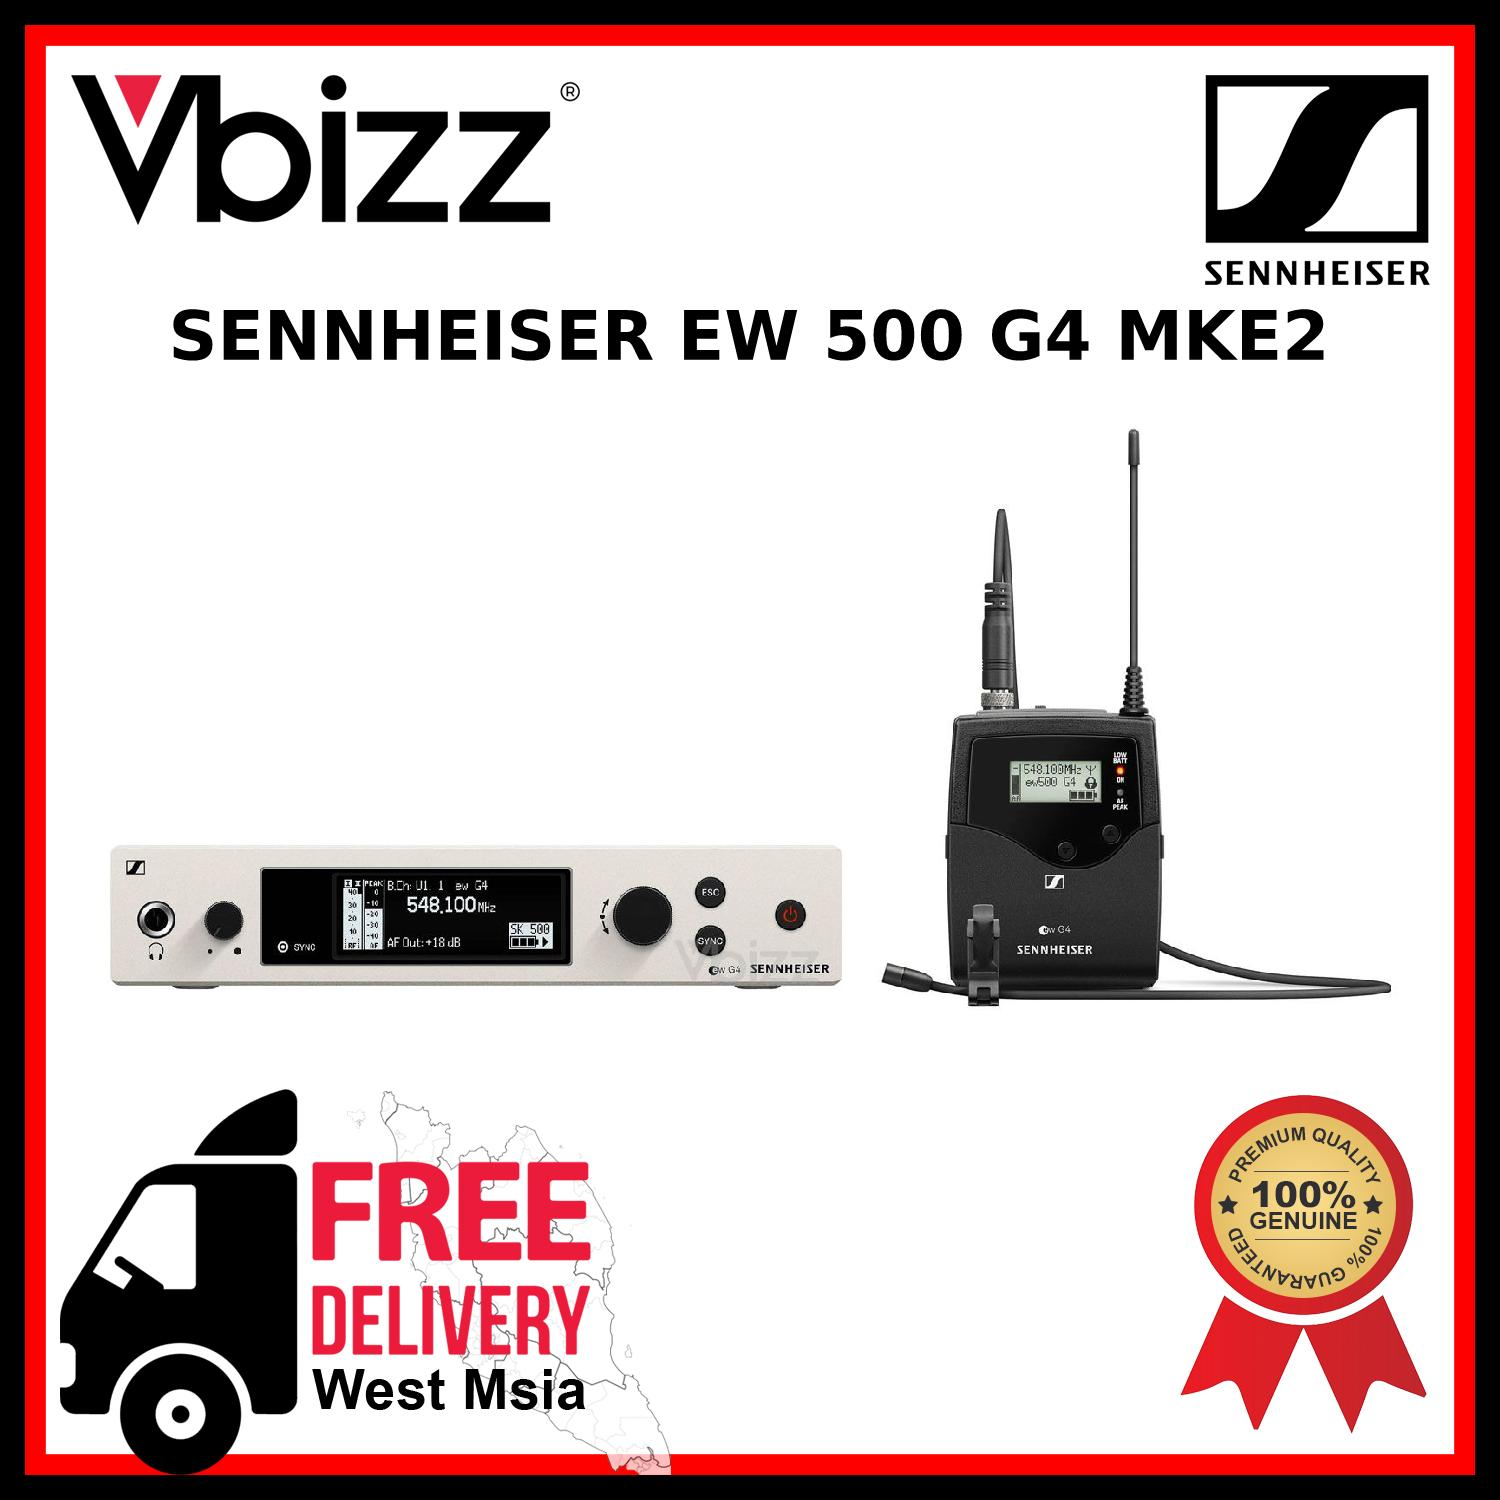 Sennheiser EW500 G4 MKE2 *FREE DELIVERY* Wireless Microphone System